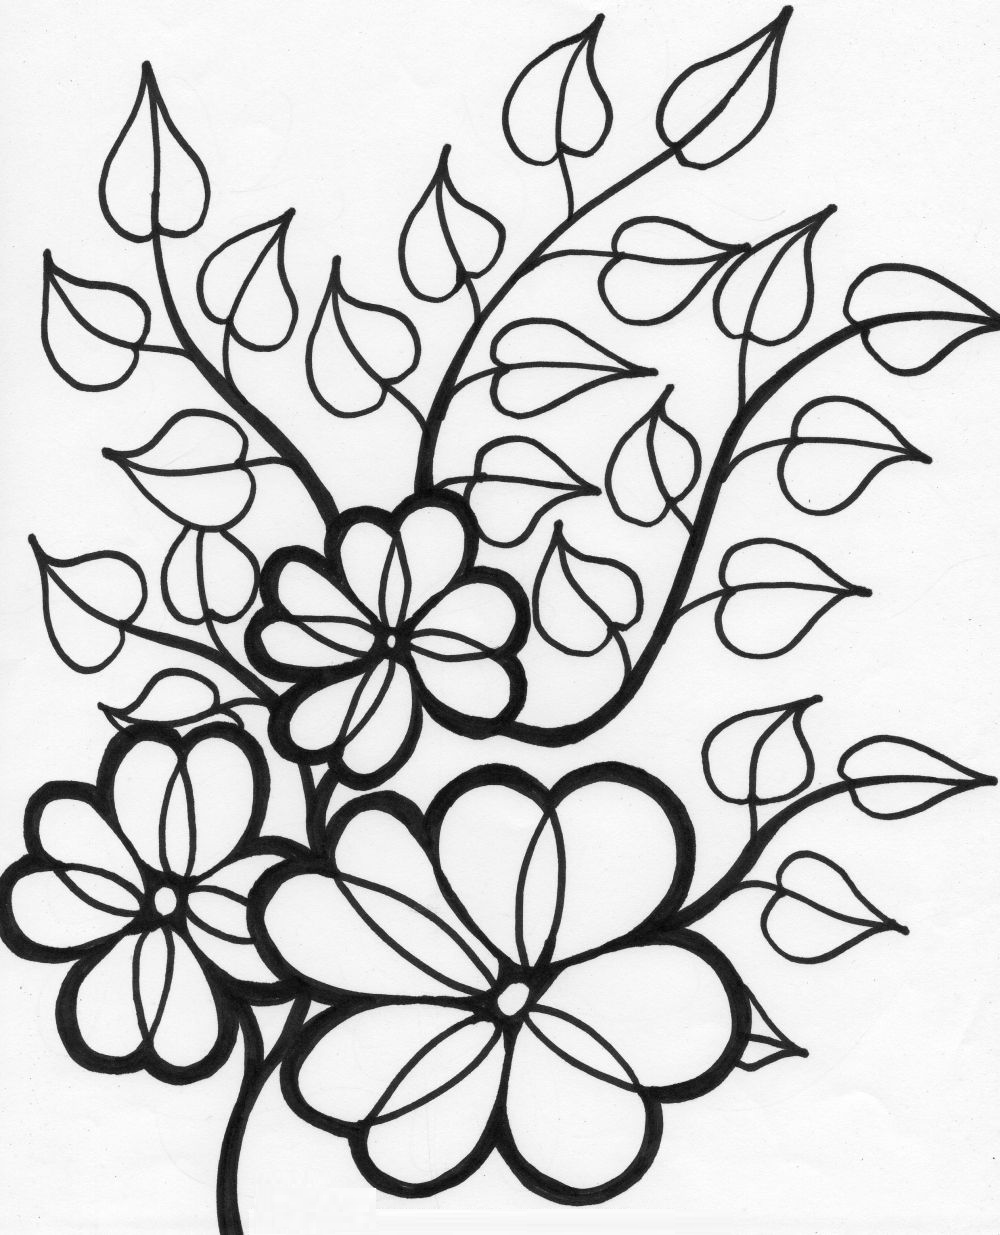 free printable flowers to color free printable flower coloring pages for kids best flowers color free printable to